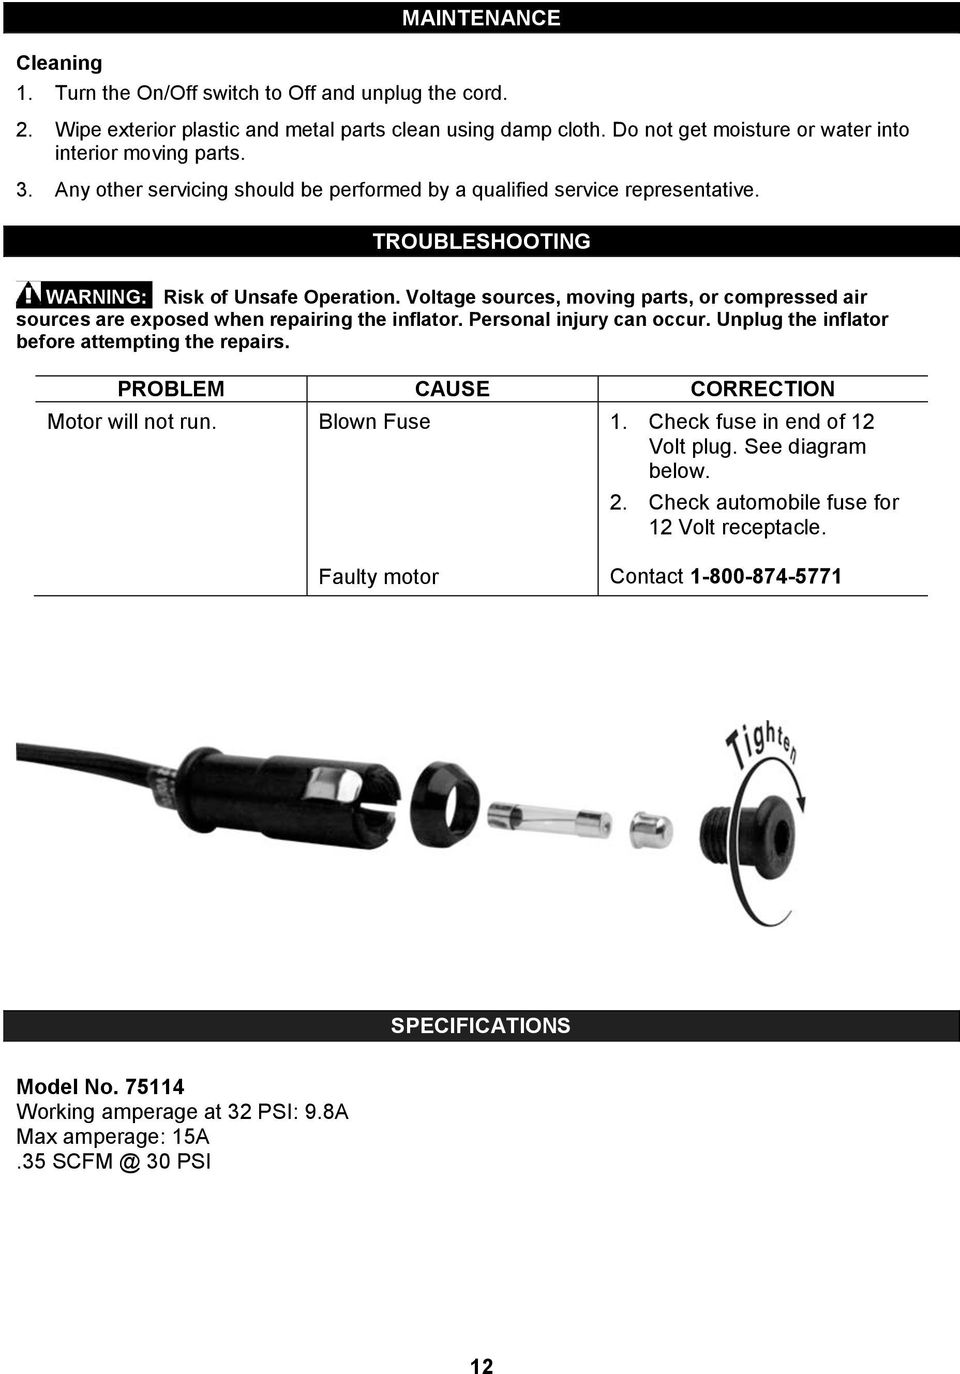 Operator S Manual 12v Inflator Model No Safety Guidelines Assembly Howreplaceblownfuse6427 Voltage Sources Moving Parts Or Compressed Air Are Exposed When Repairing The